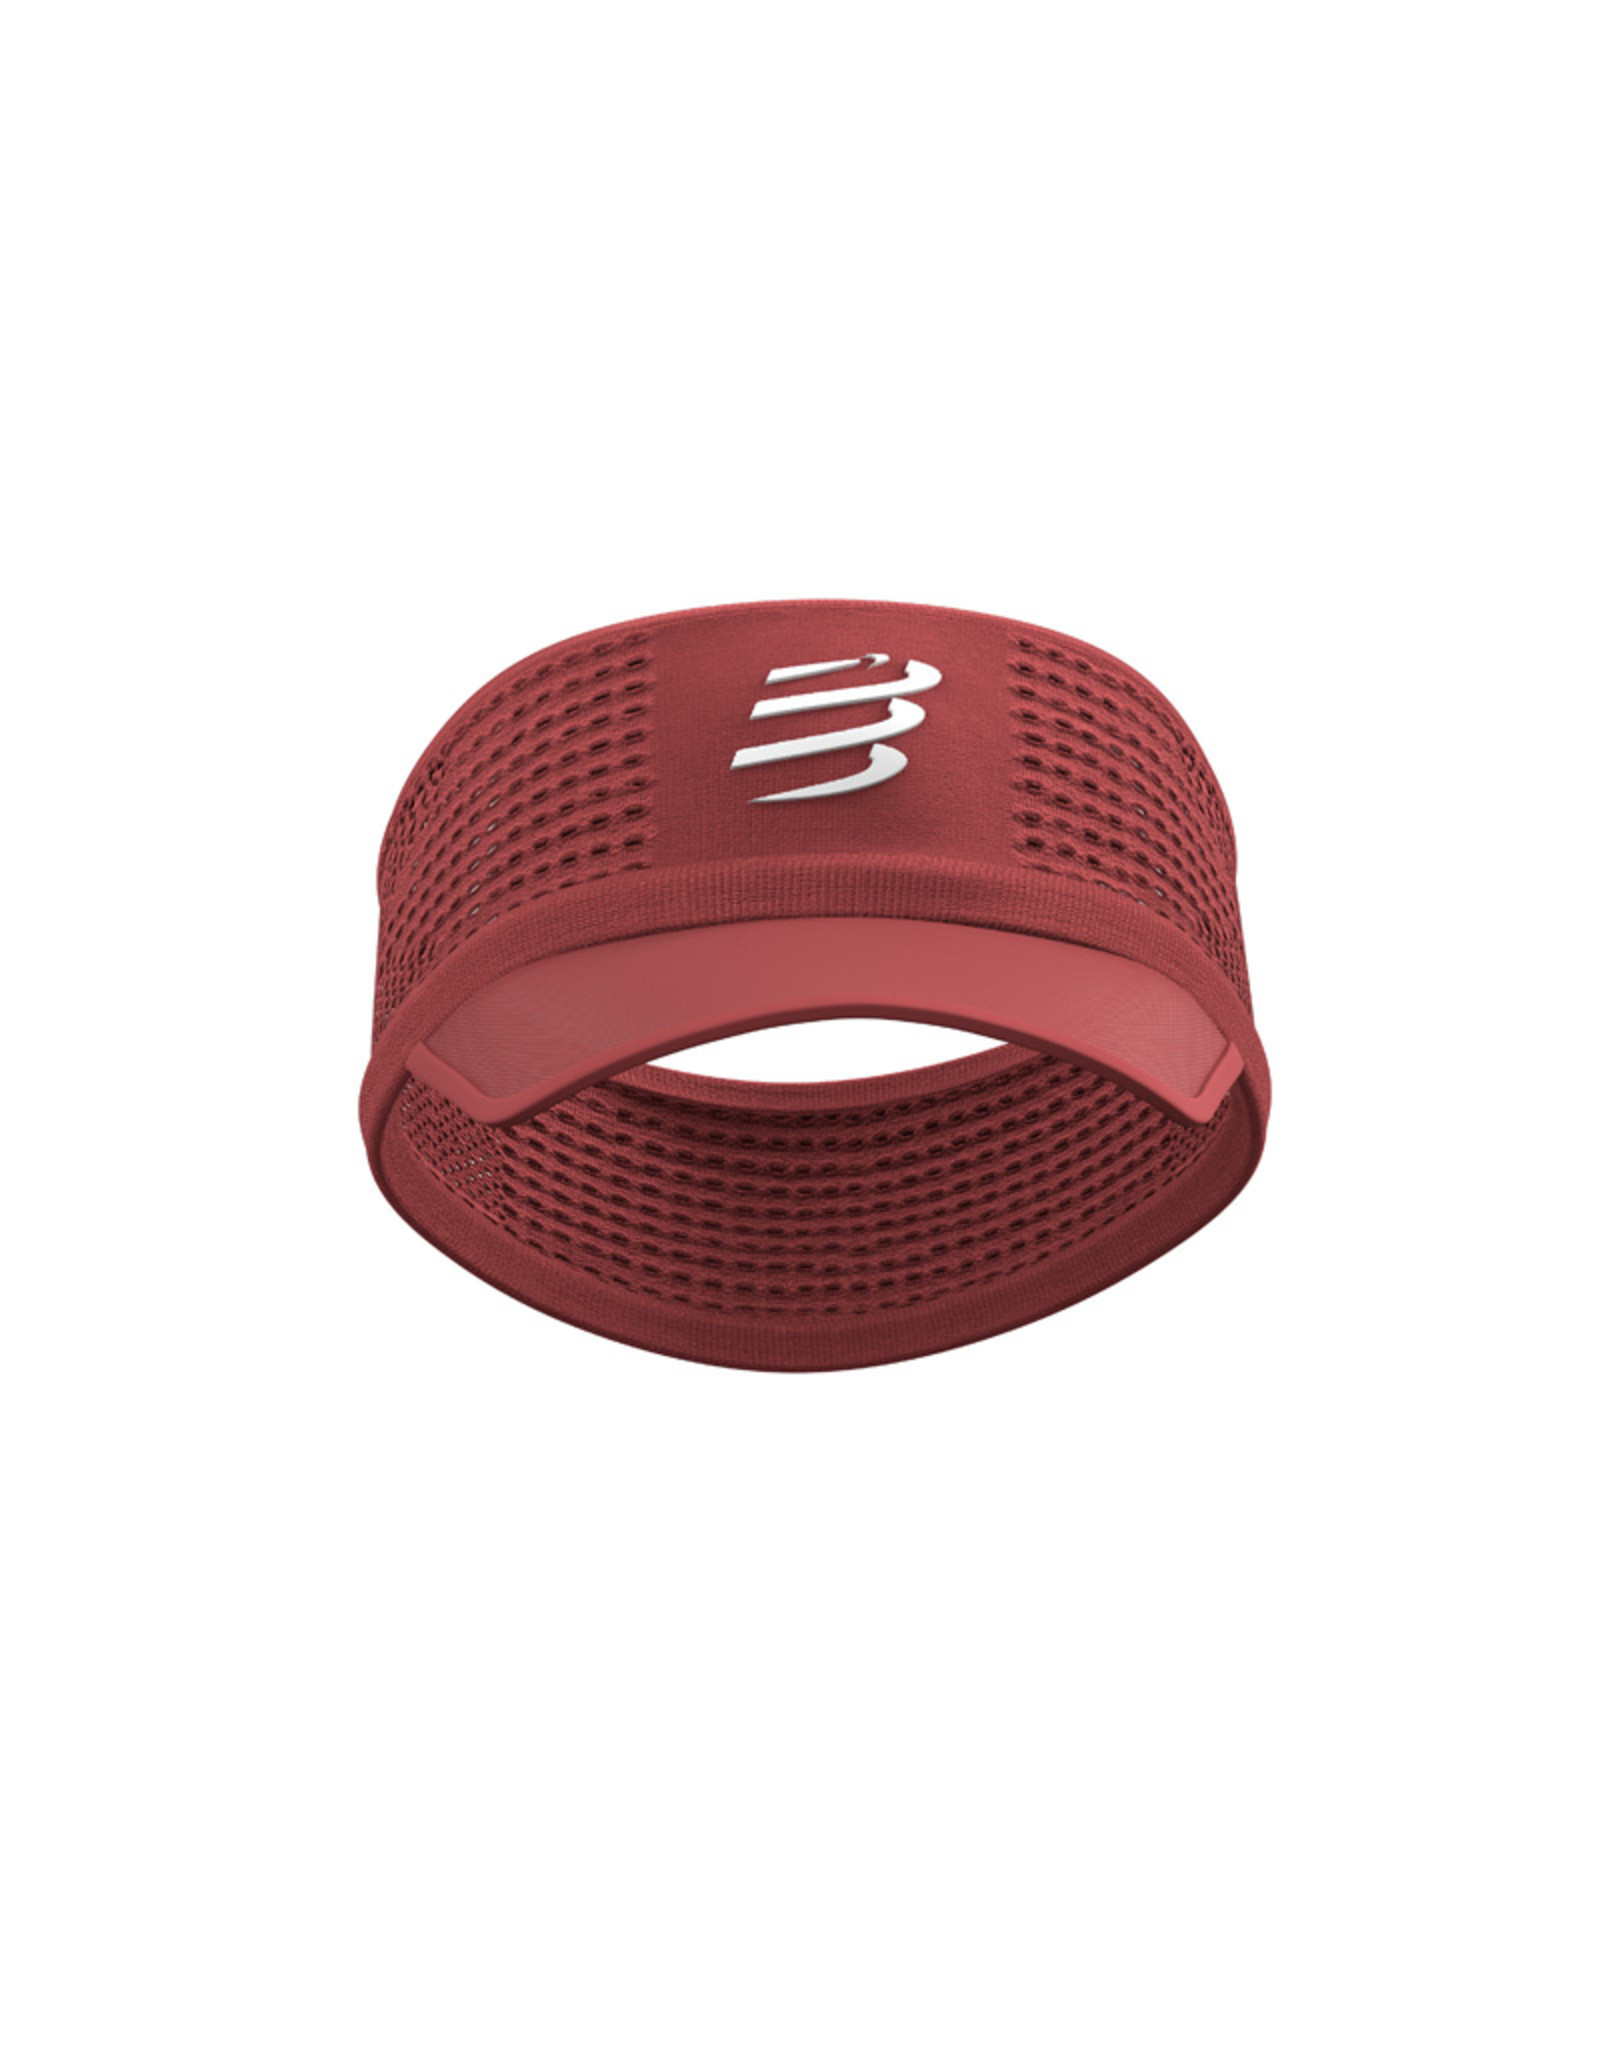 Compressport Spiderweb Headband On/Off - Rose